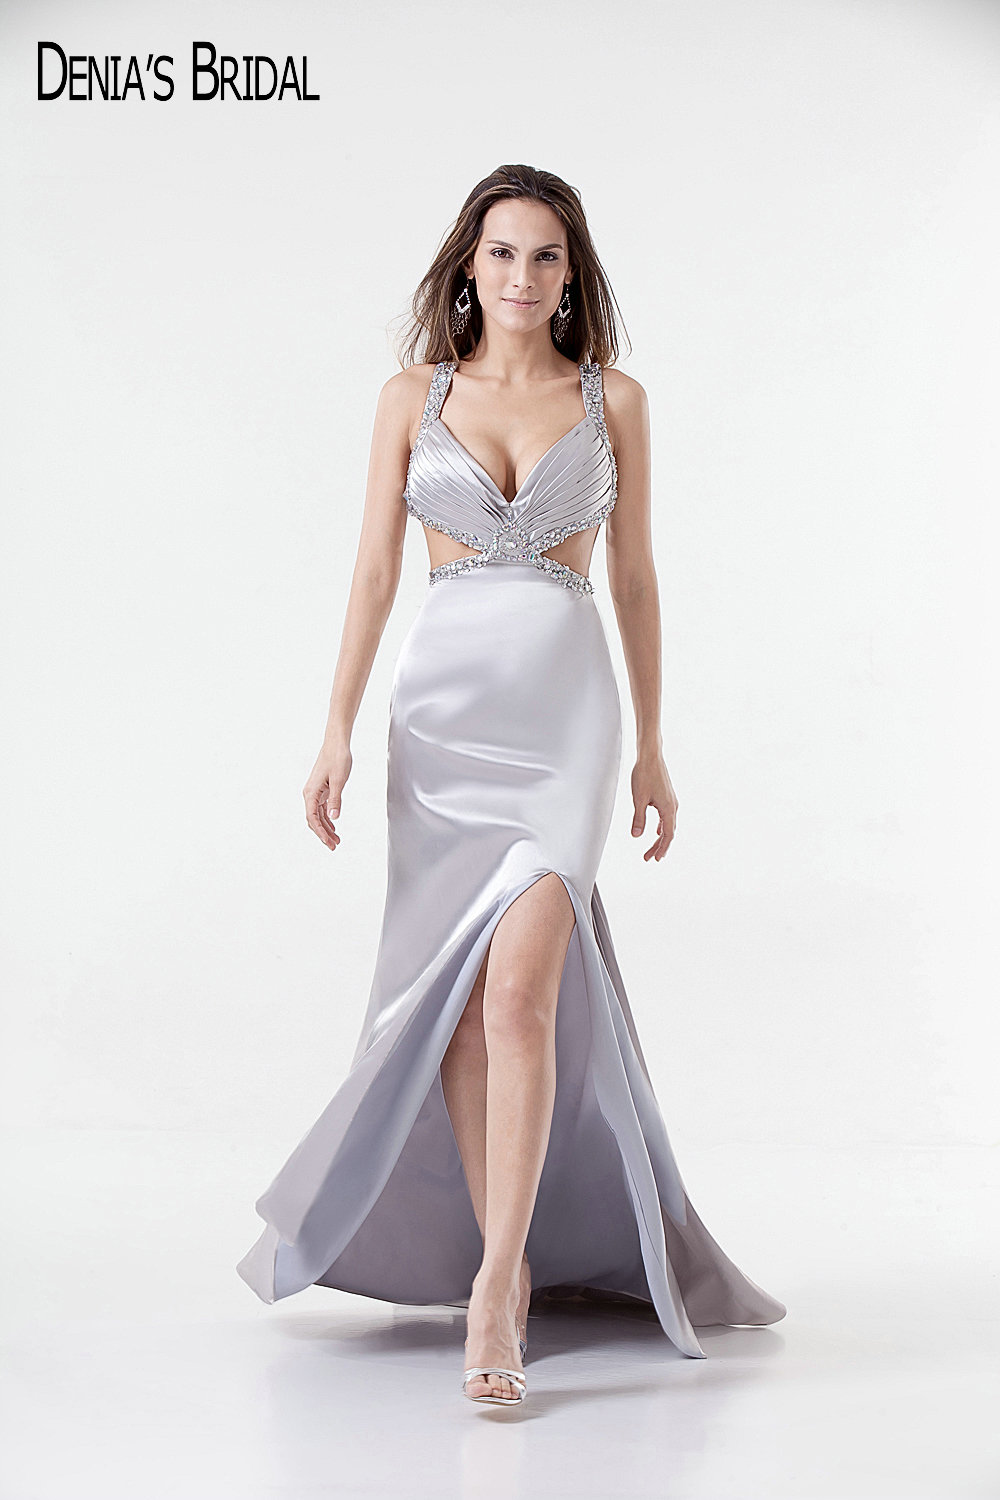 2017 Actual Images Mermaid Evening Dresses with Sweetheart Neckline Cut Waist Front Split Floor-Length Beaded Sliver Prom Gowns